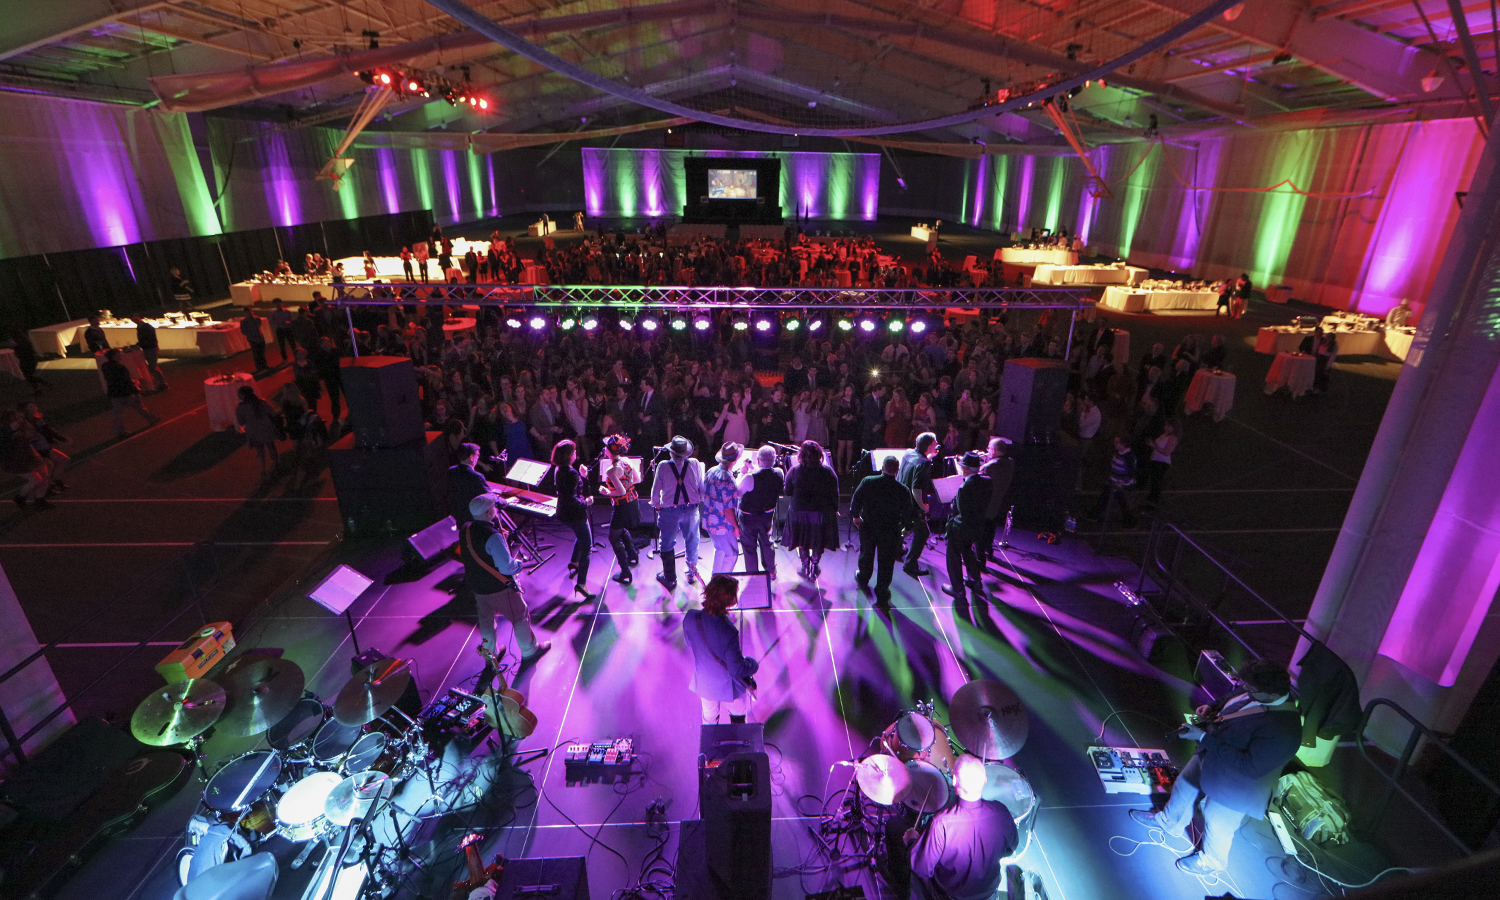 The President's Garage Band performs for students in Bristol Field House on Saturday. The Presidents' Ball was hosted by the presidents of multiple student organizations in honor of President Mark D. Gearan and Mary Herlihy Gearan in recognition of their service to the Colleges.